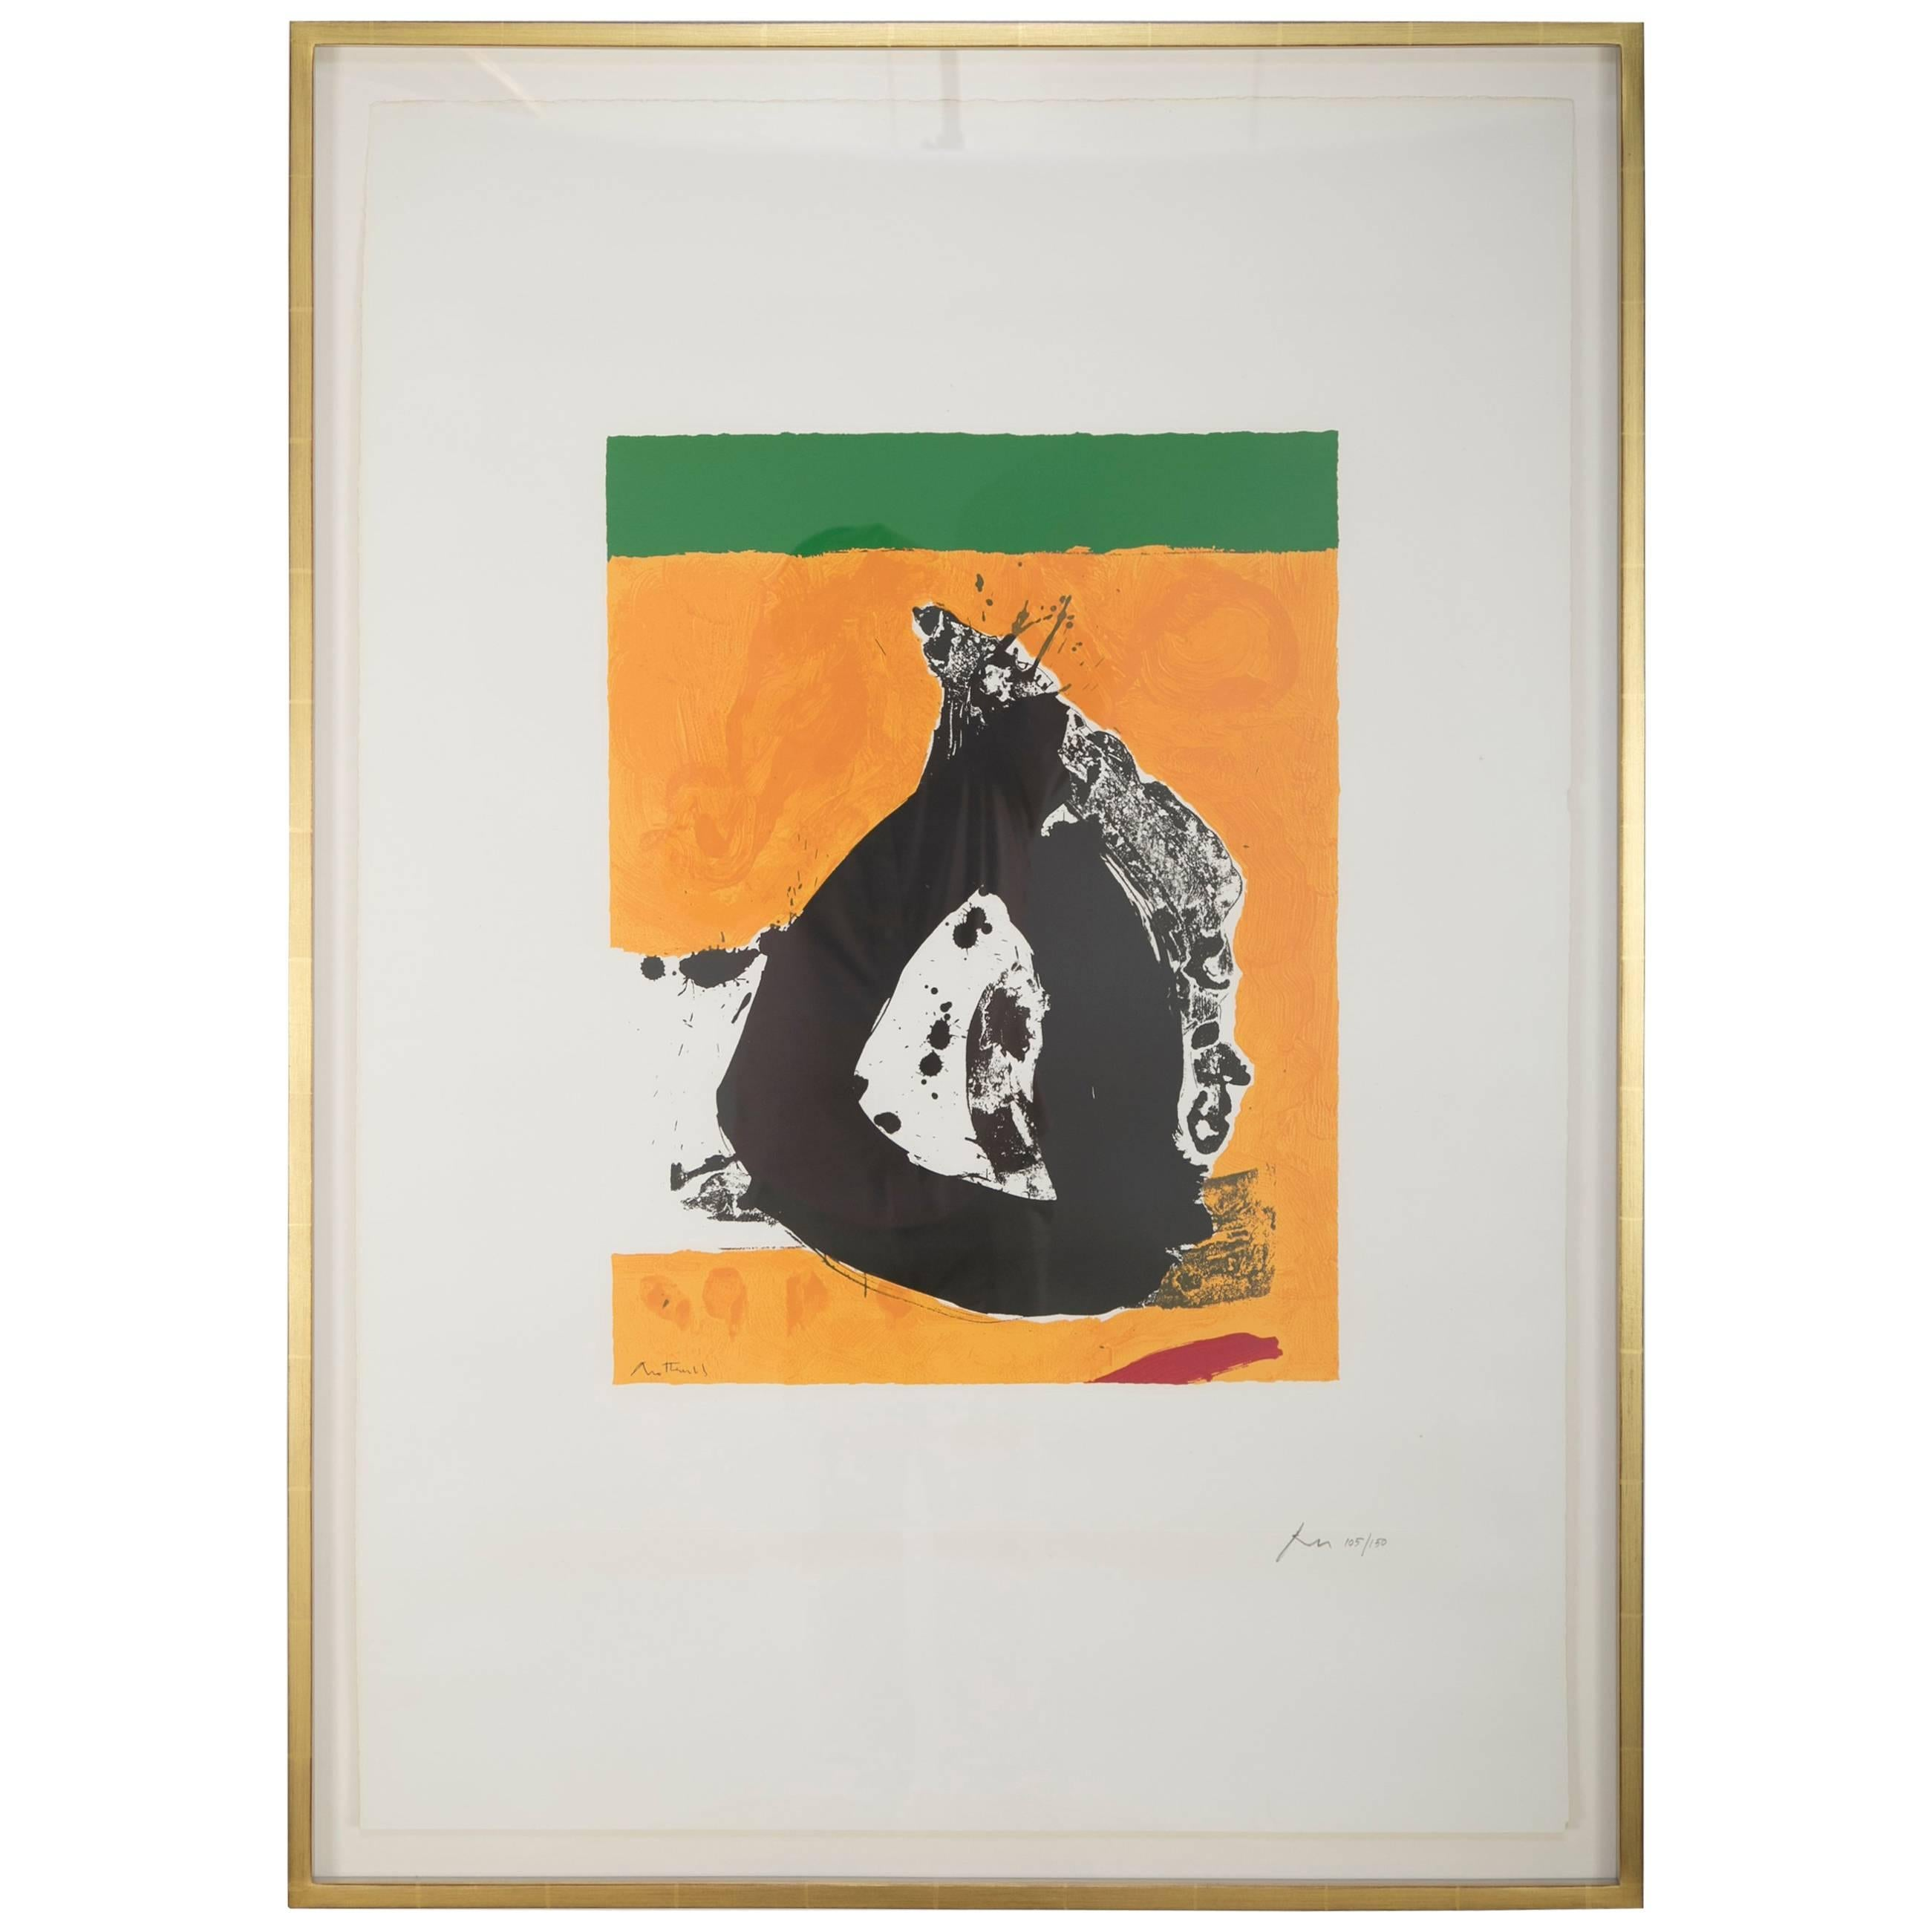 The Basque Suite: Untitled, Signed and Numbered Silkscreen by Robert Motherwell